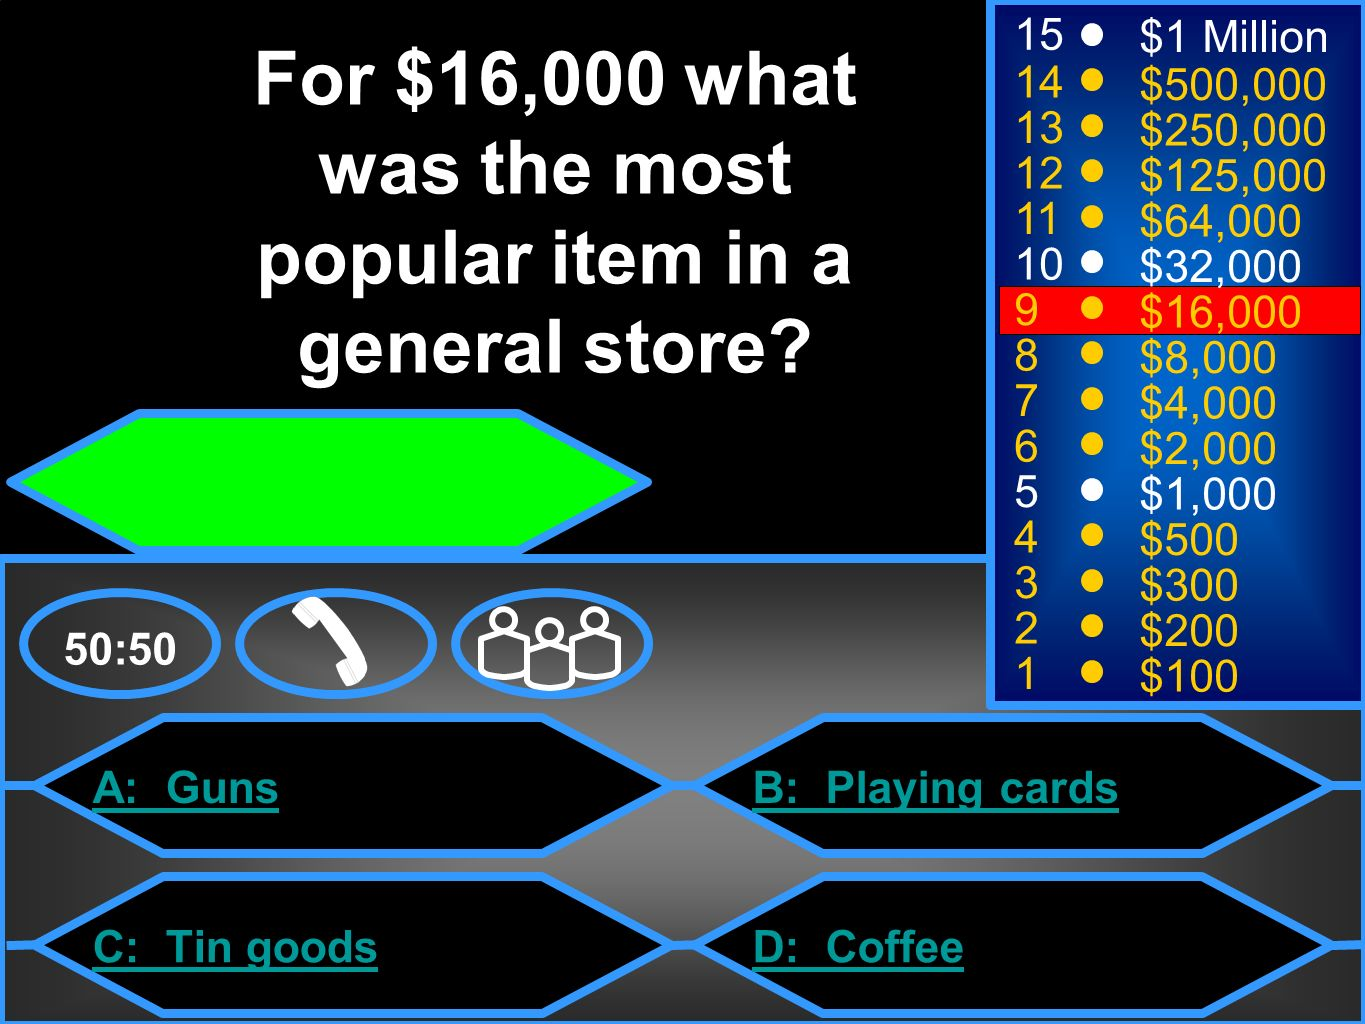 A: Guns C: Tin goods B: Playing cards D: Coffee 50: $1 Million $500,000 $250,000 $125,000 $64,000 $32,000 $16,000 $8,000 $4,000 $2,000 $1,000 $500 $300 $200 $100 For $16,000 what was the most popular item in a general store